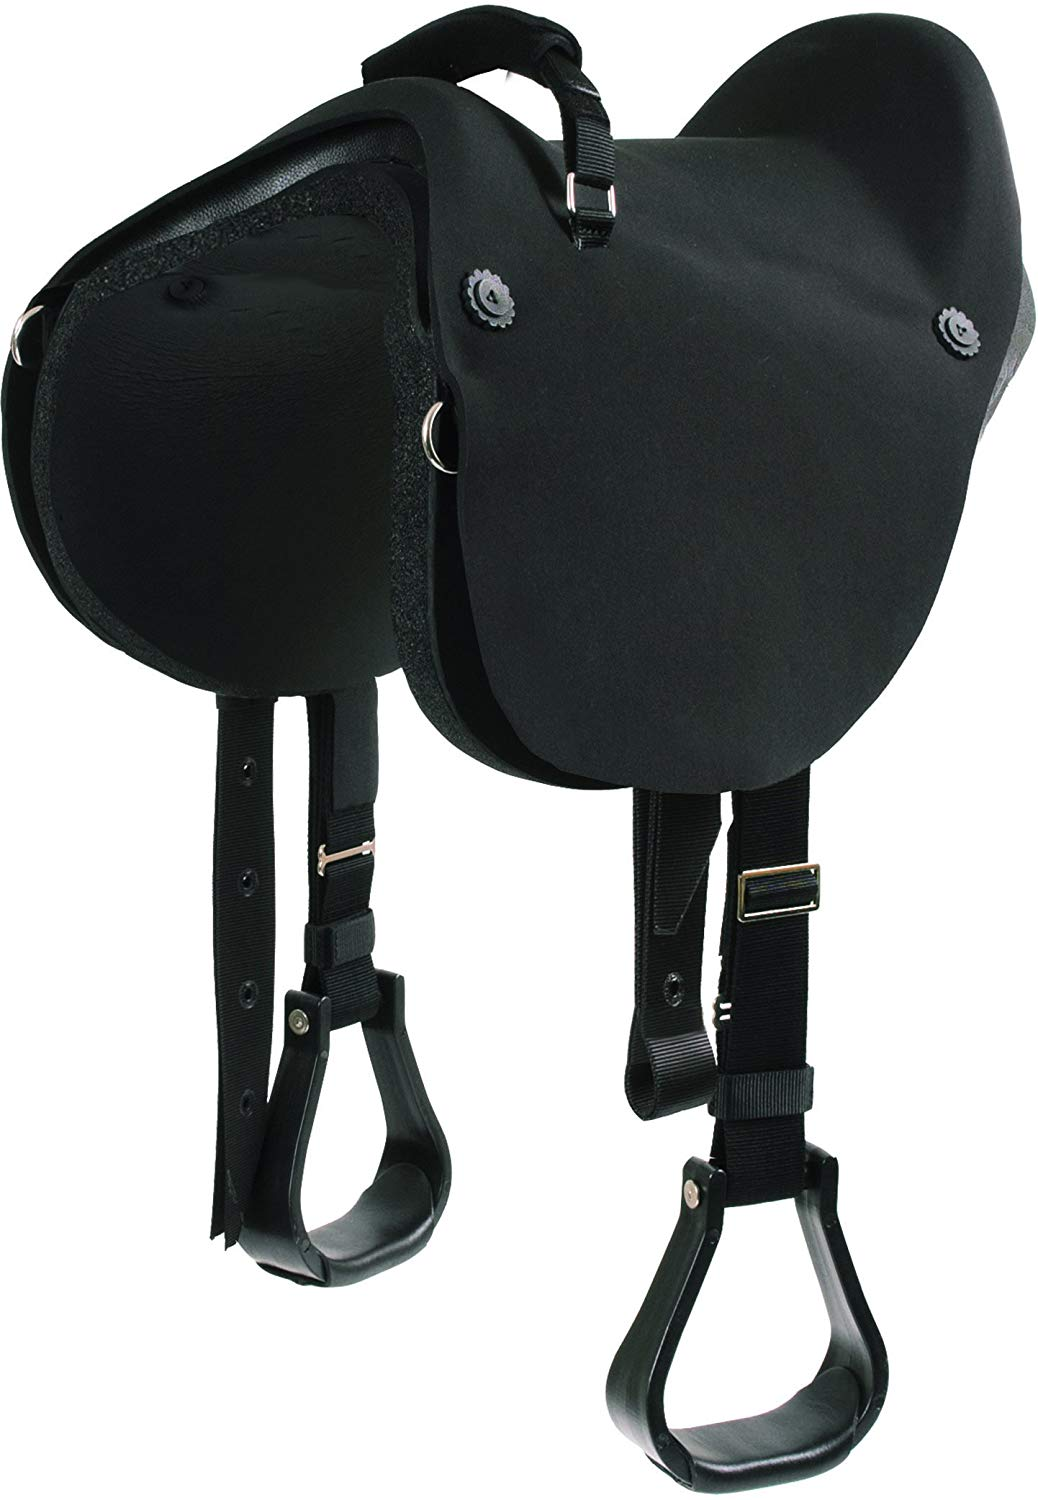 Mustang Soft Ride Saddle